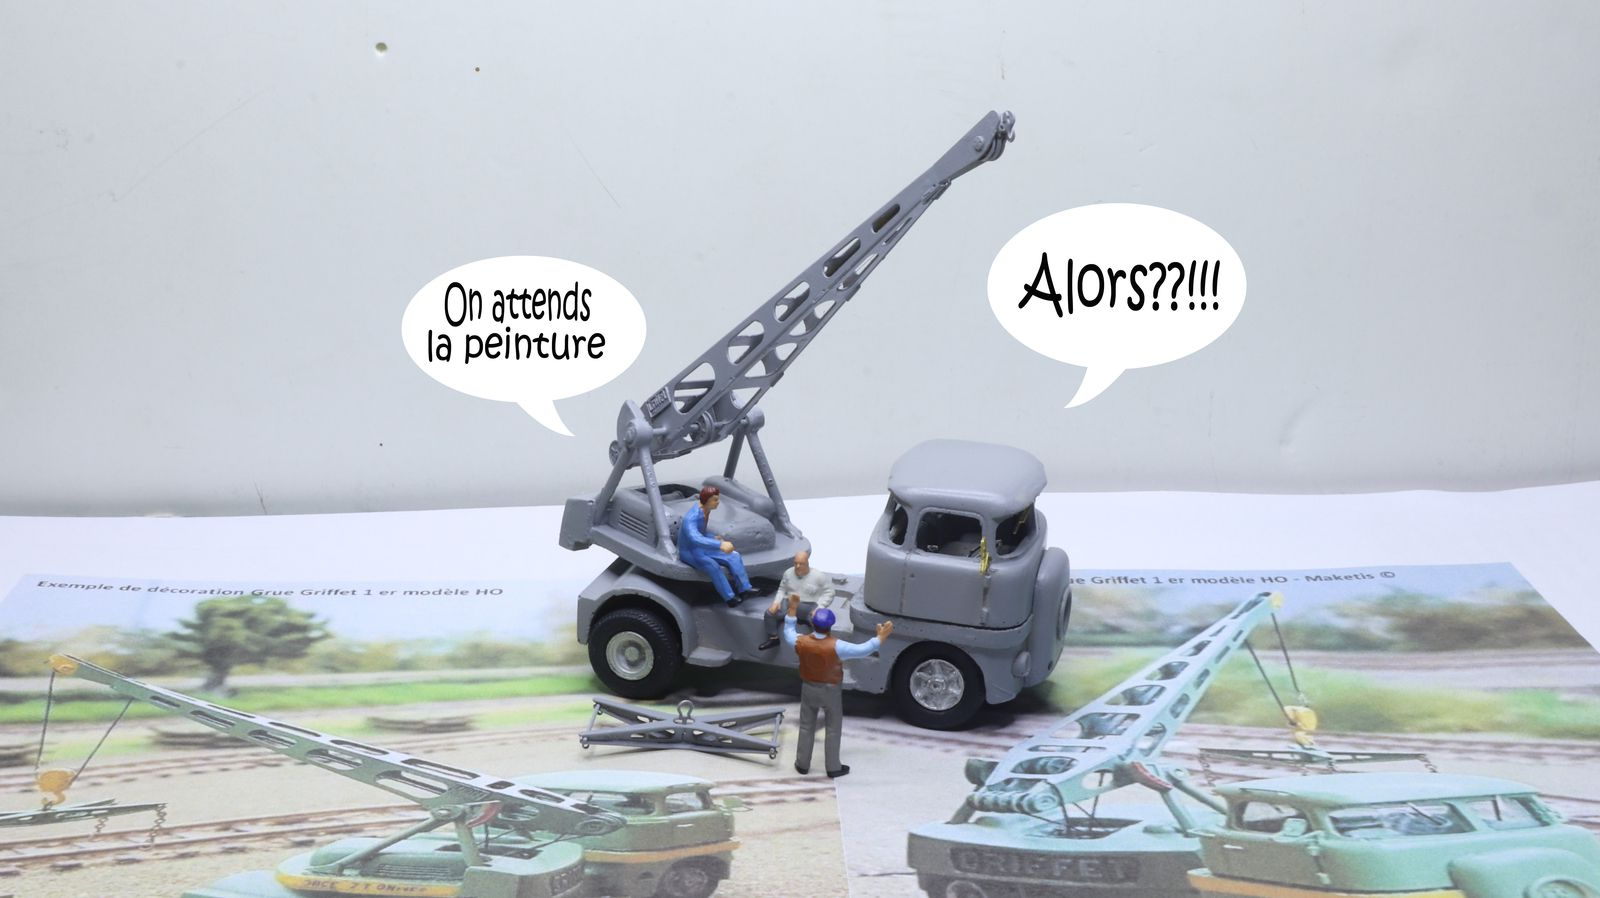 Grue Griffet: humour!!